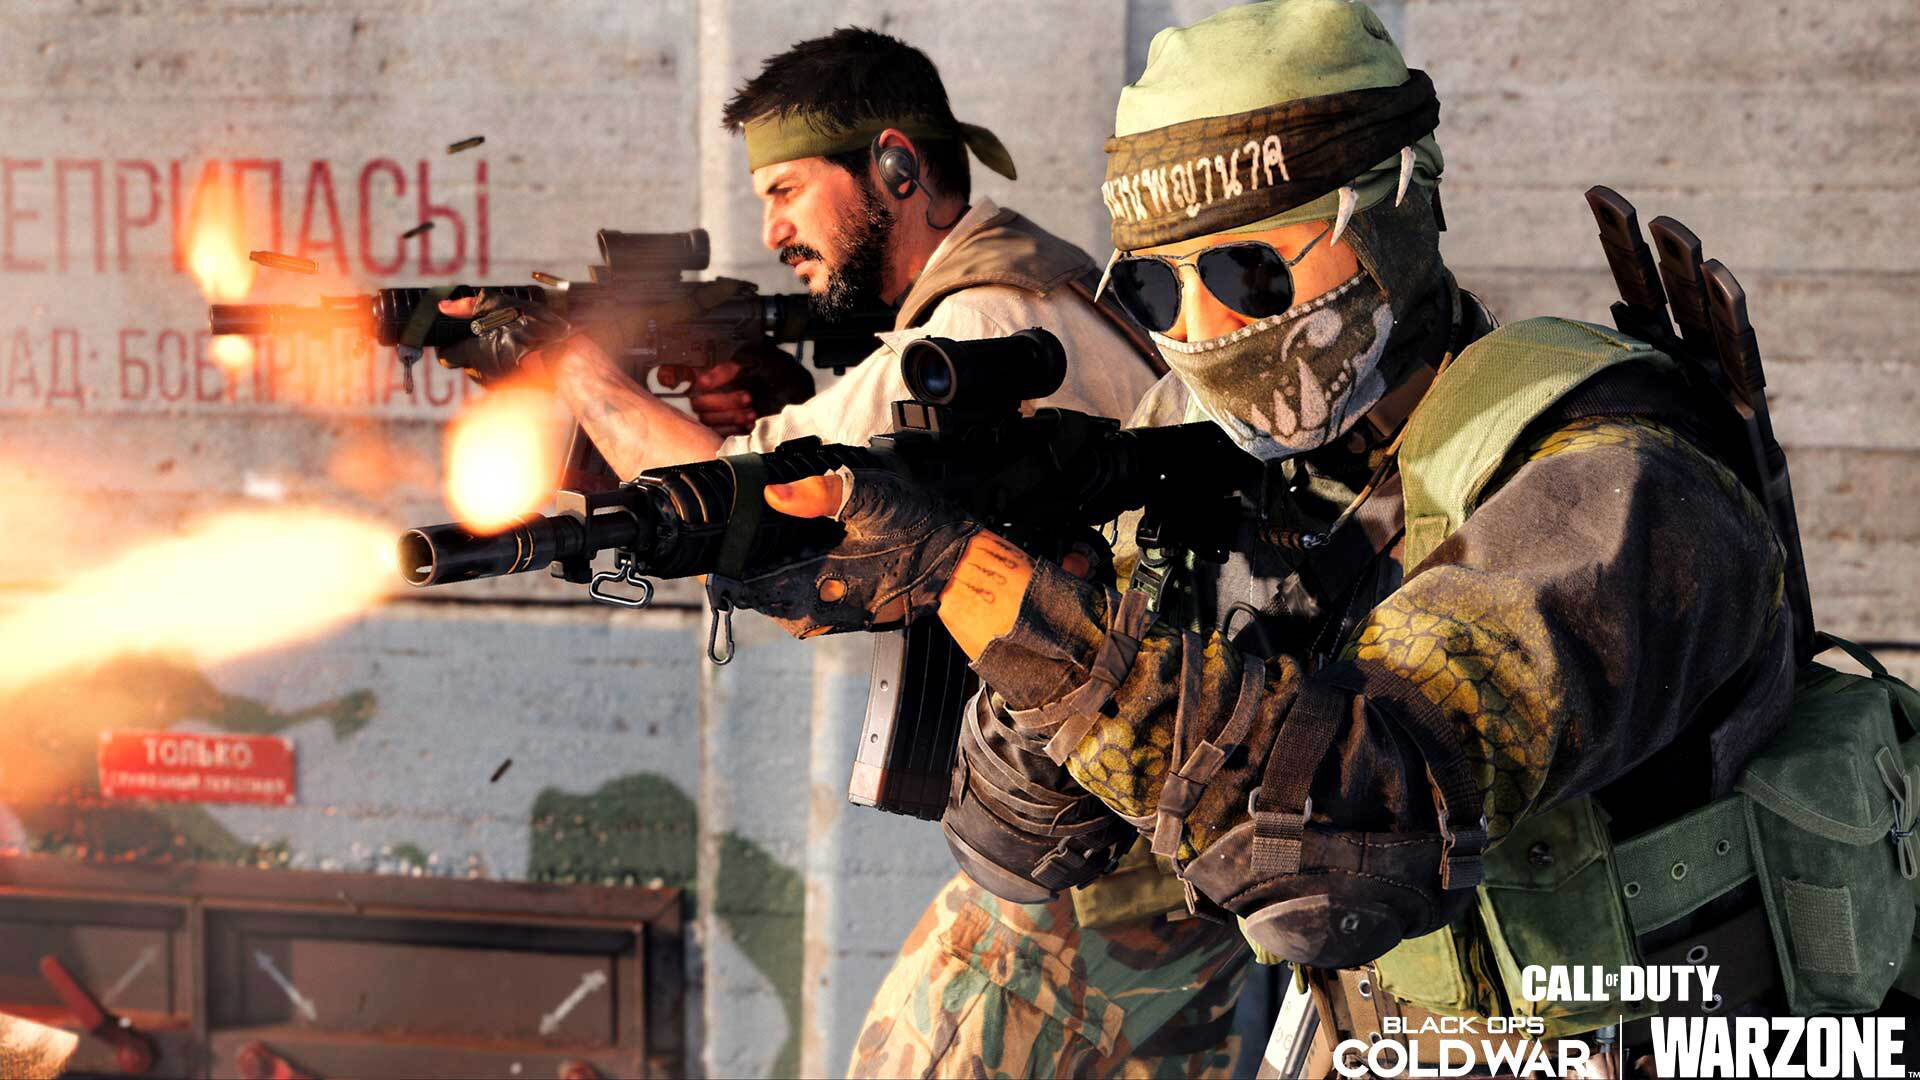 Call of Duty Black Ops Cold War & Warzone: Activation of Season 2 - time, update information